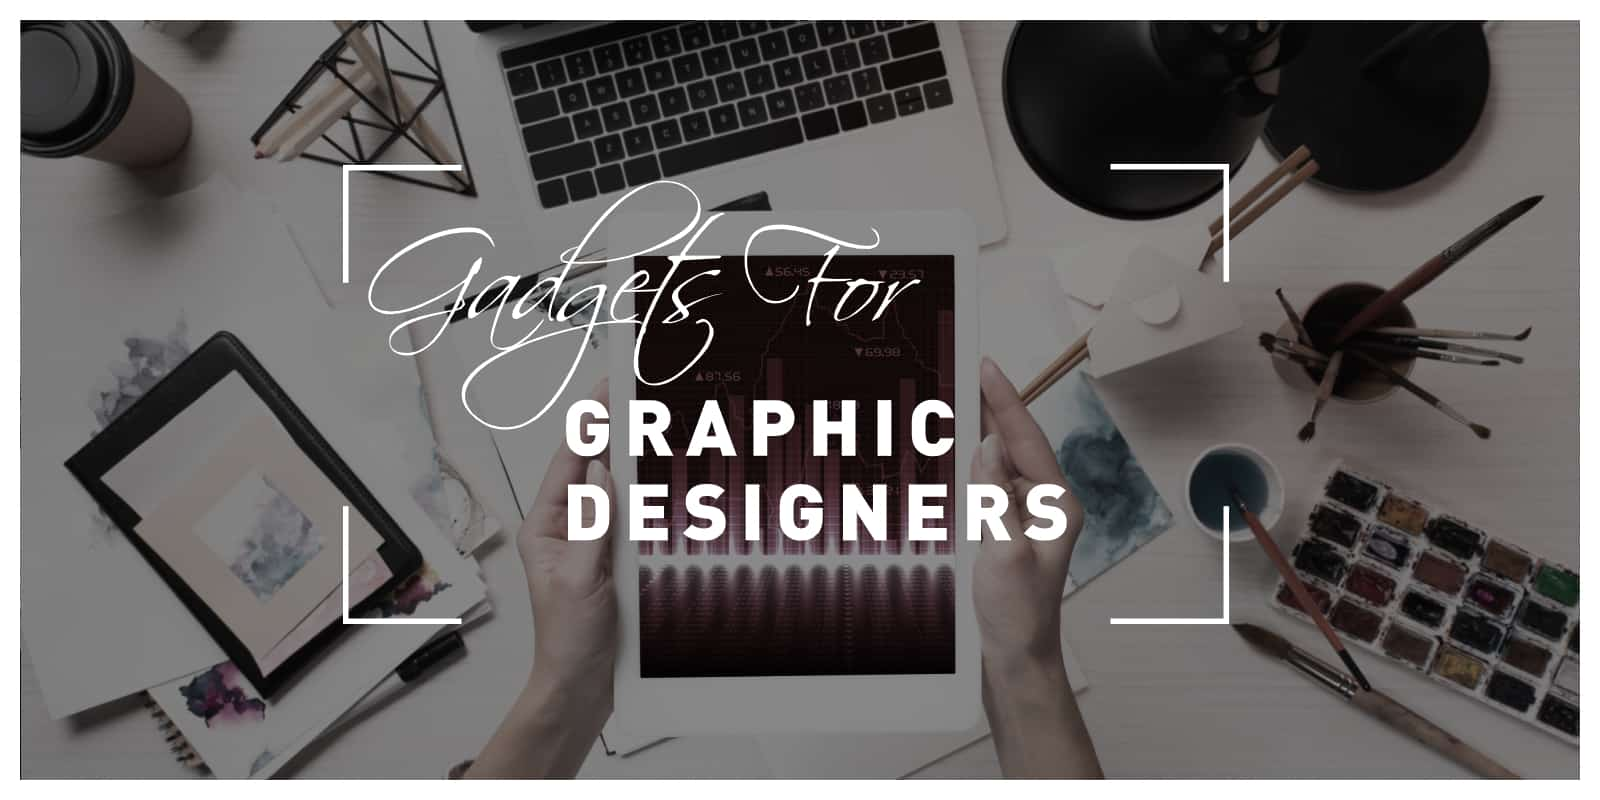 Gadgets for graphic designers